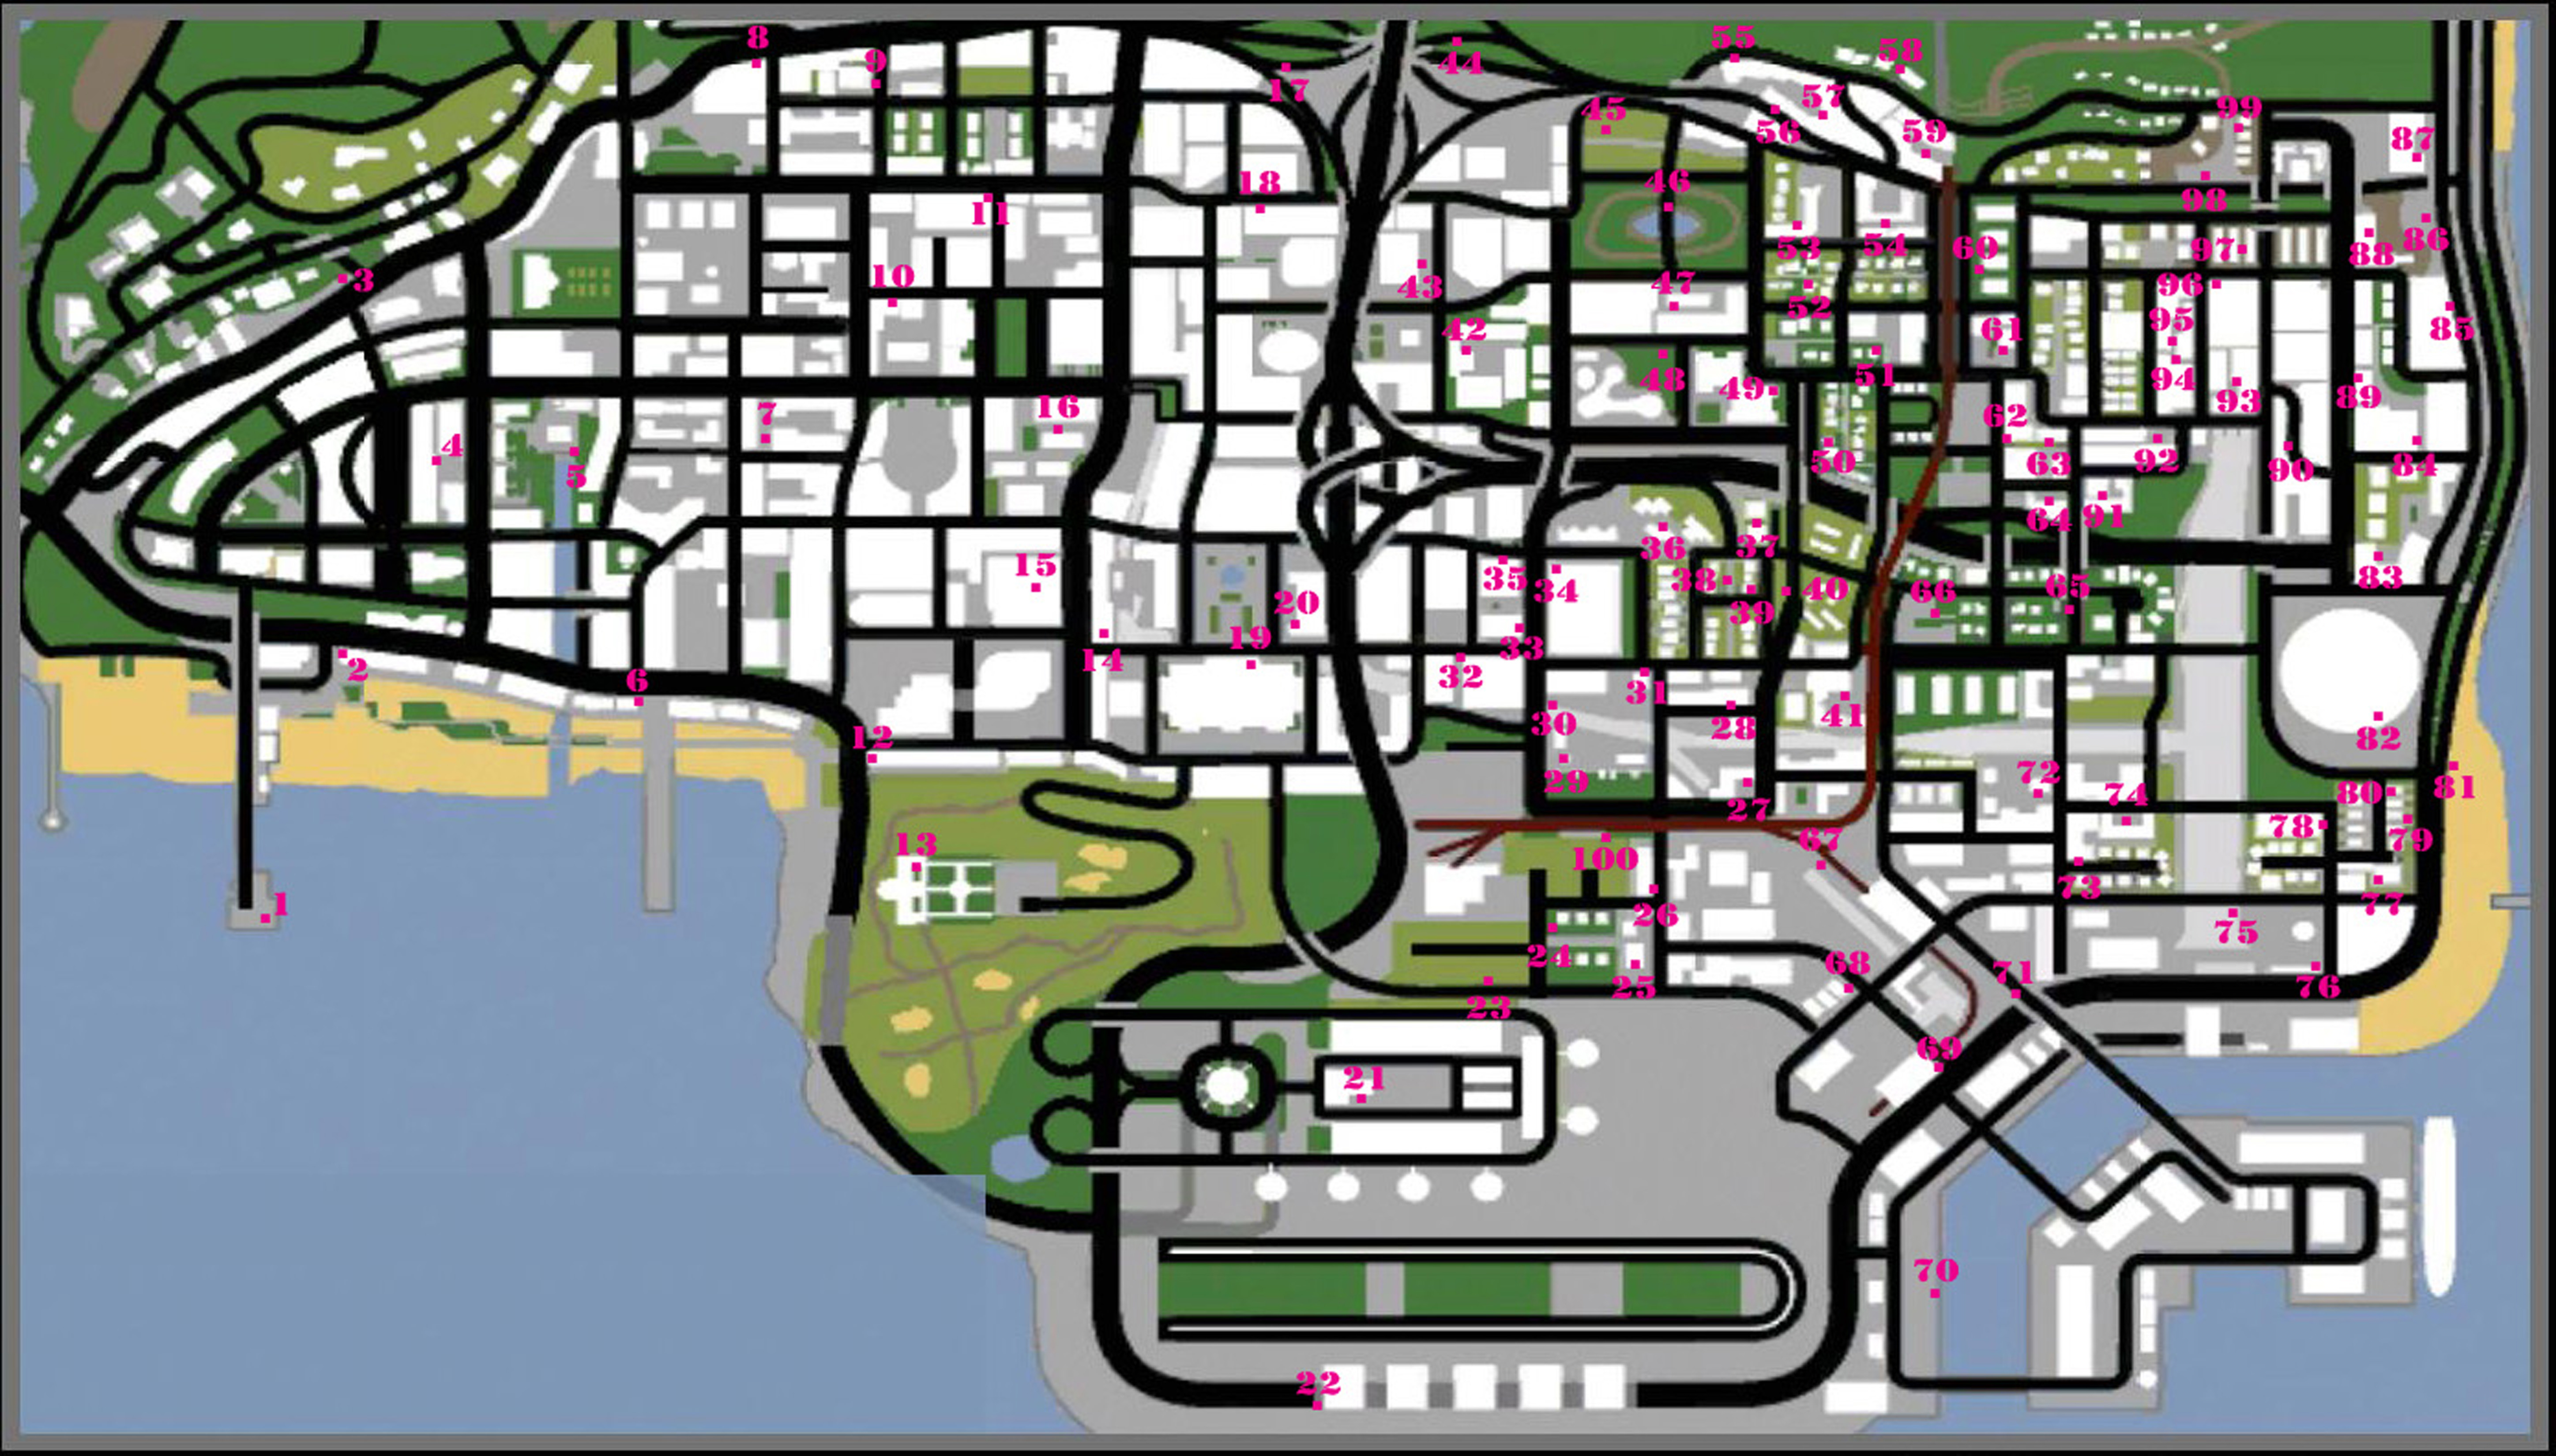 Grand theft auto san andreas tags location guide